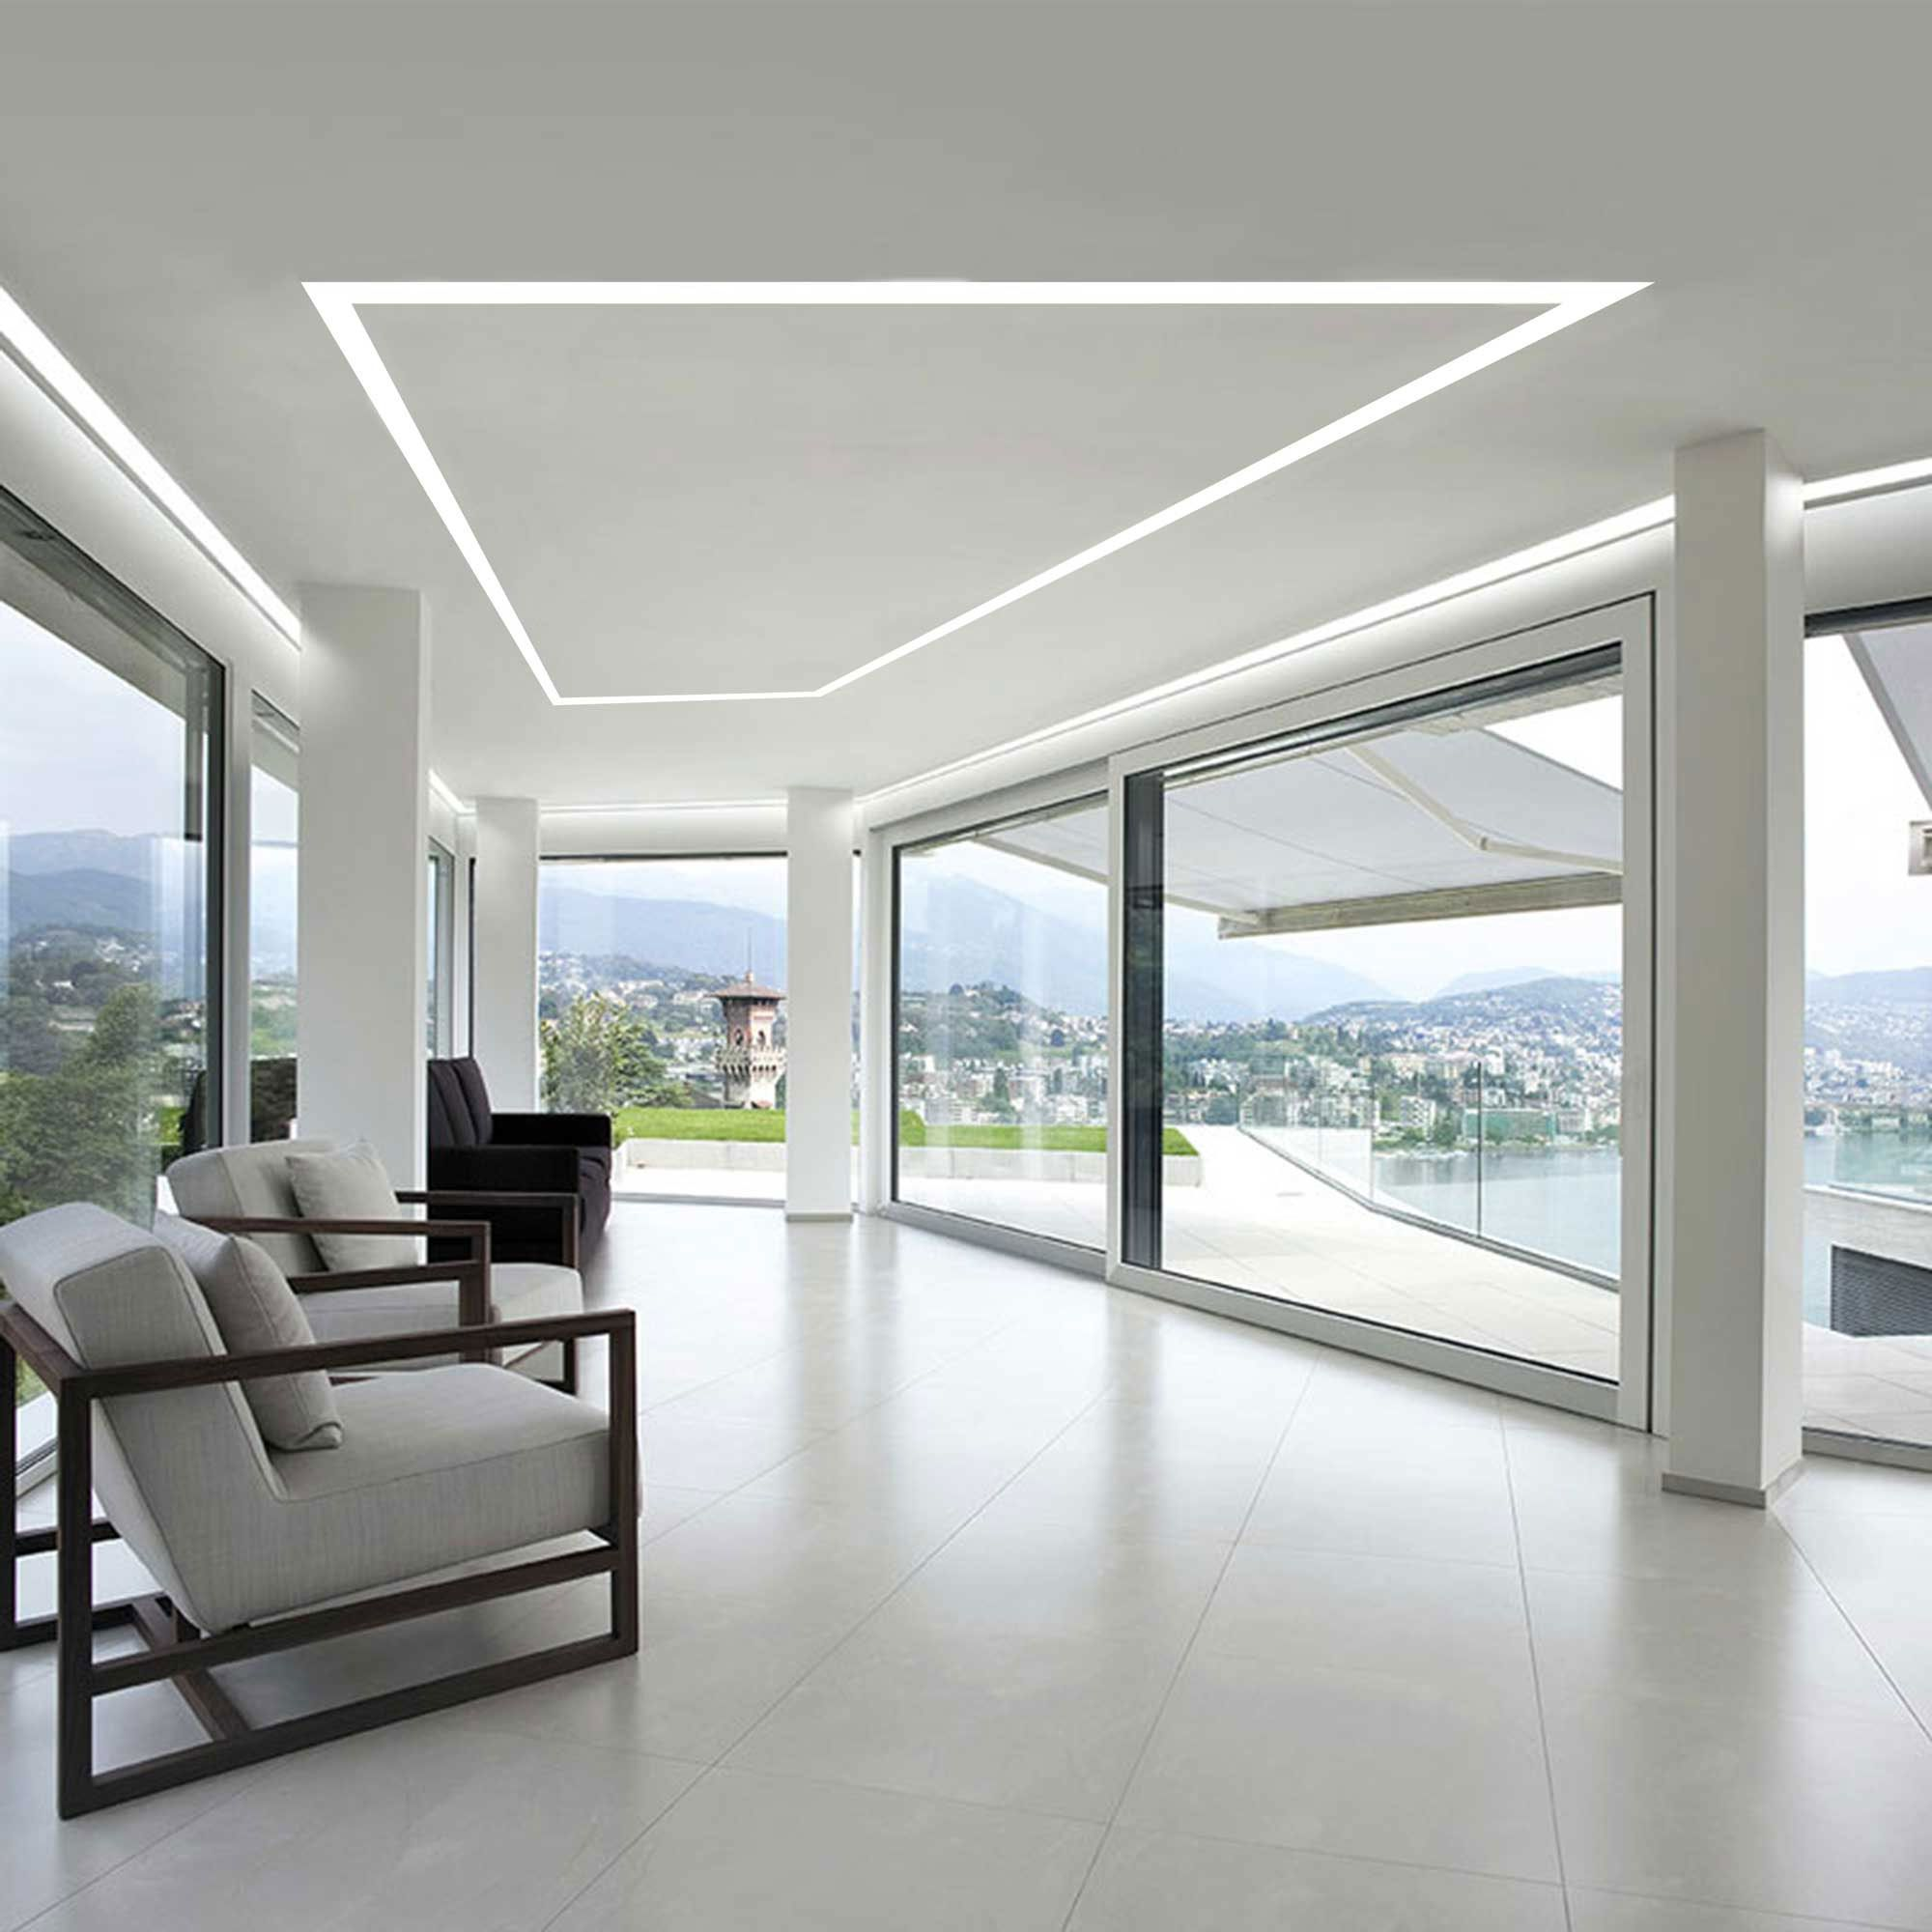 Truline Architectural Plaster In Led Lighting System Pure